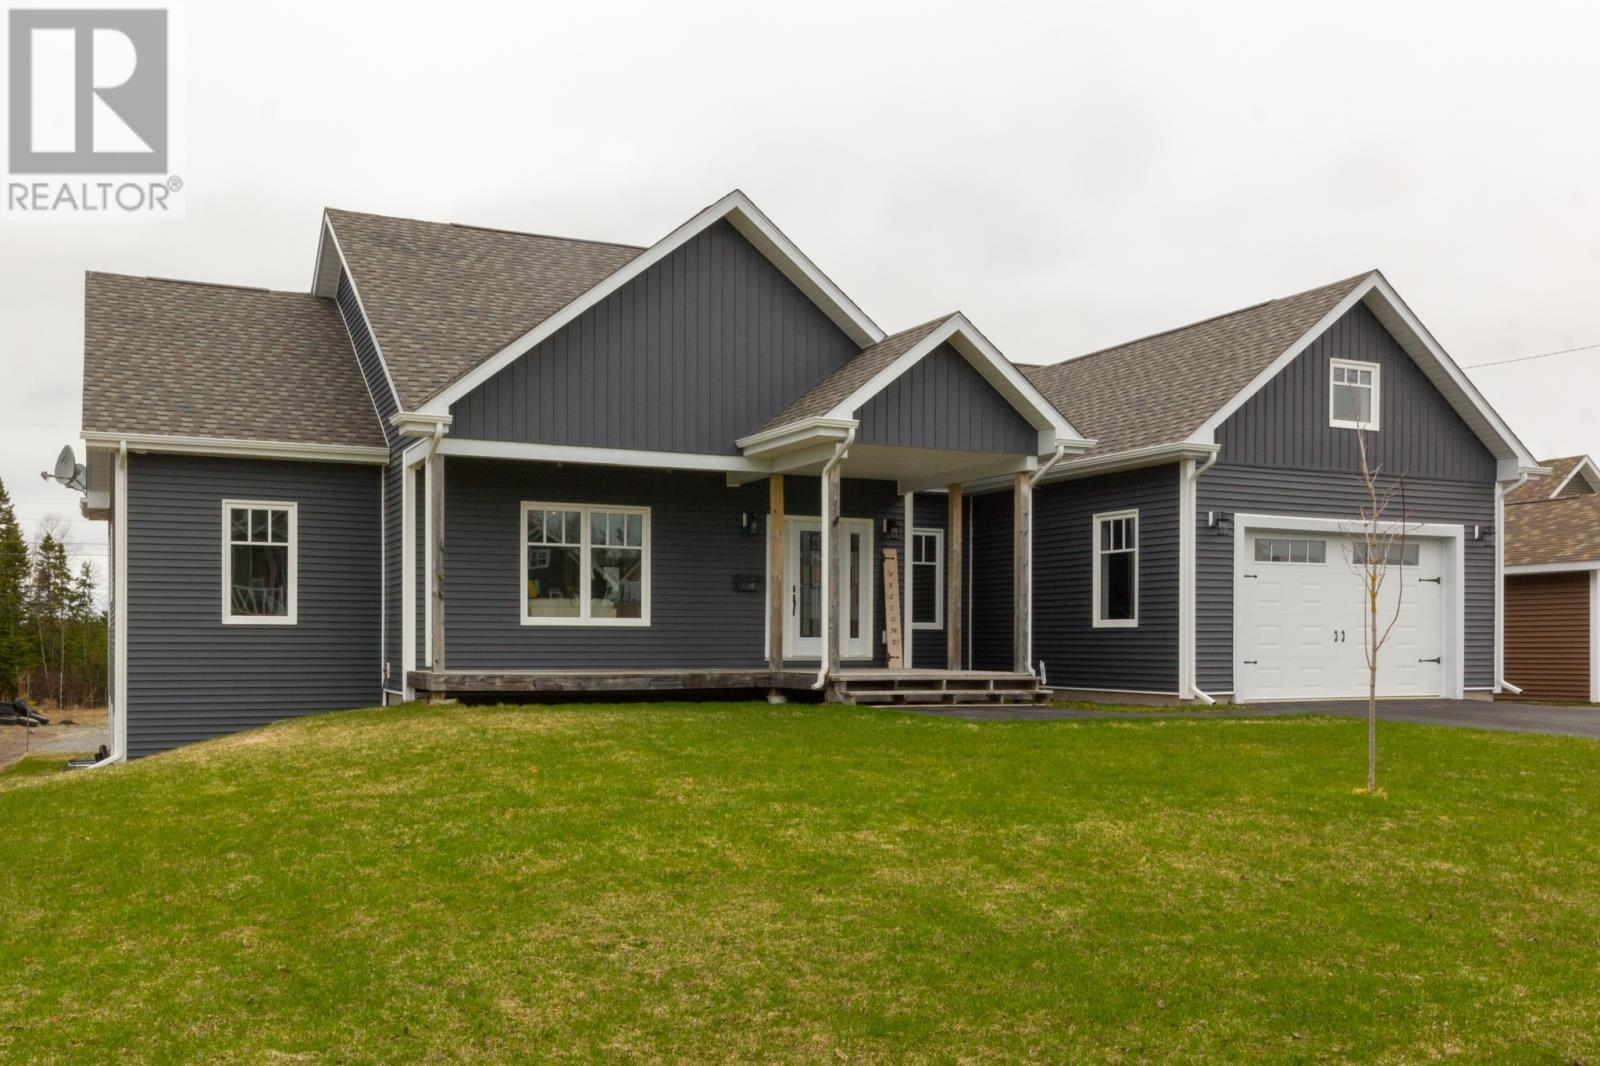 Removed: 4 Ratcliffe Place, Gander, NL - Removed on 2019-05-28 09:51:20